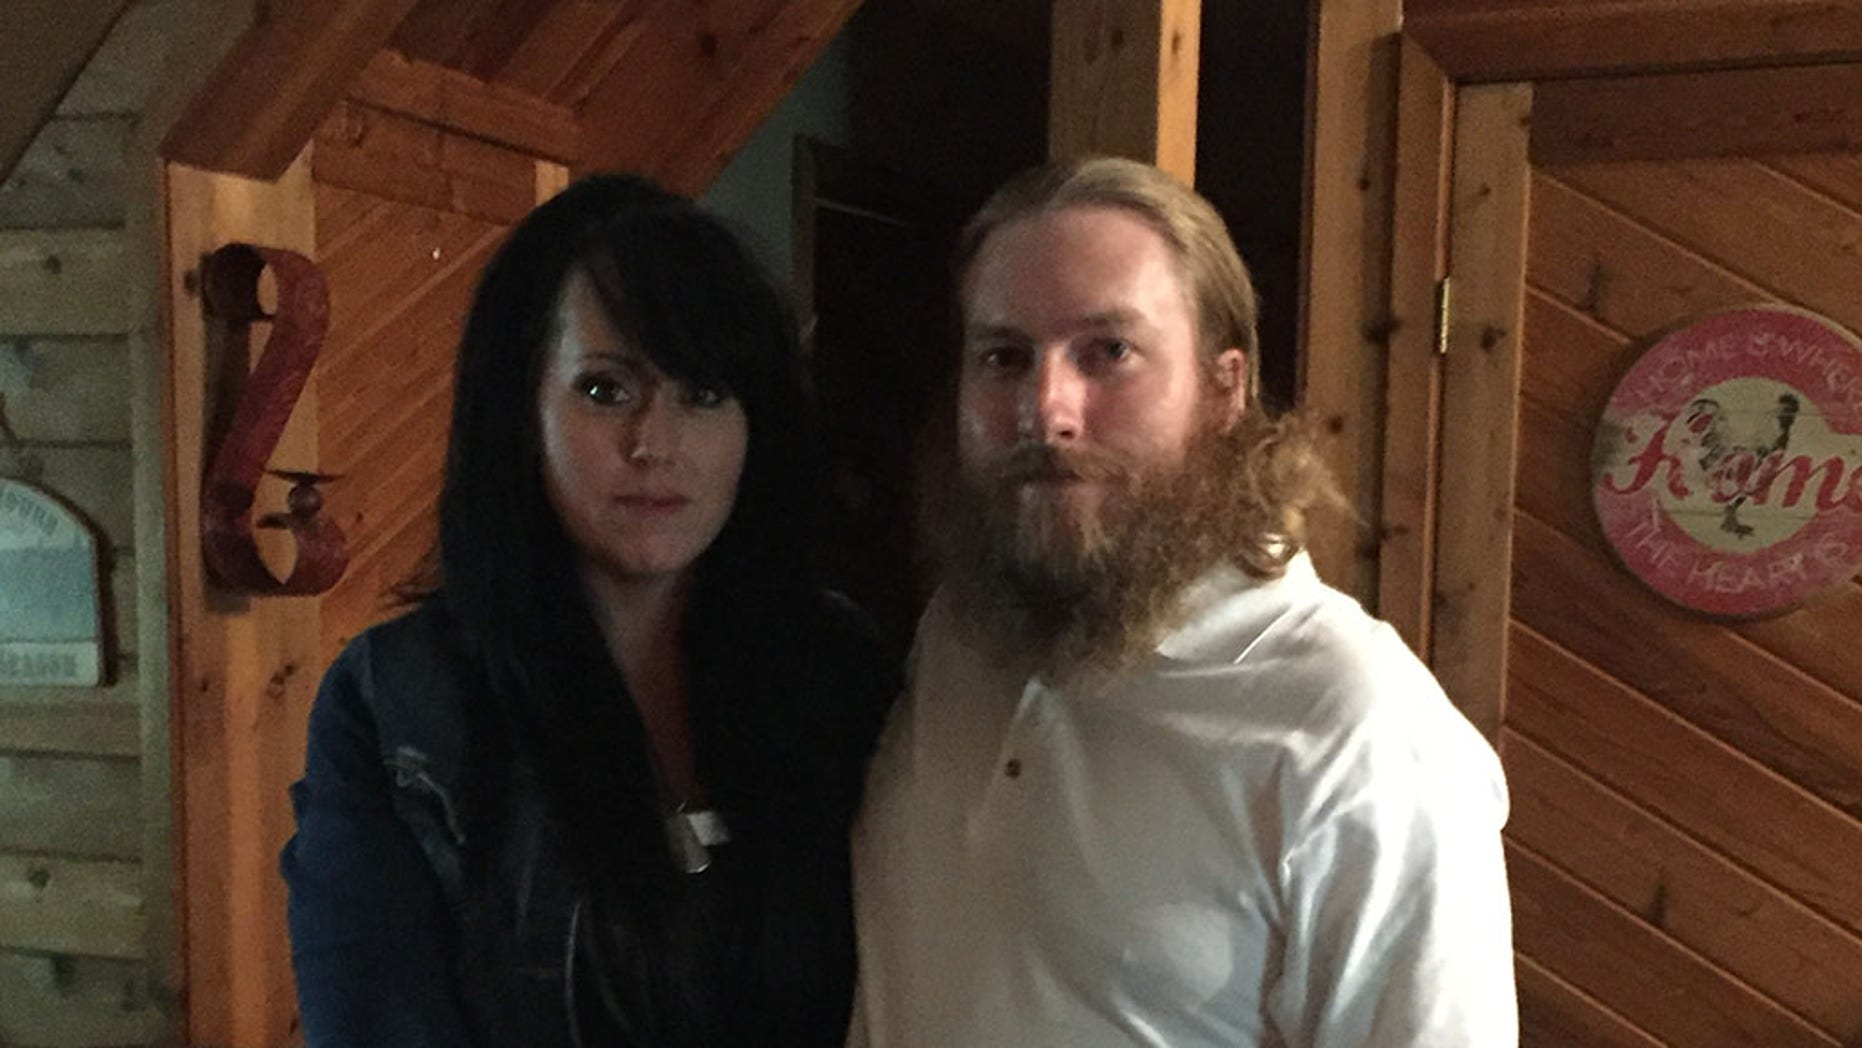 Sadie and Kristian Saucier at their home in Vermont. Kristian Saucier has been released after serving a one-year sentence at a federal prison in Massachusetts.